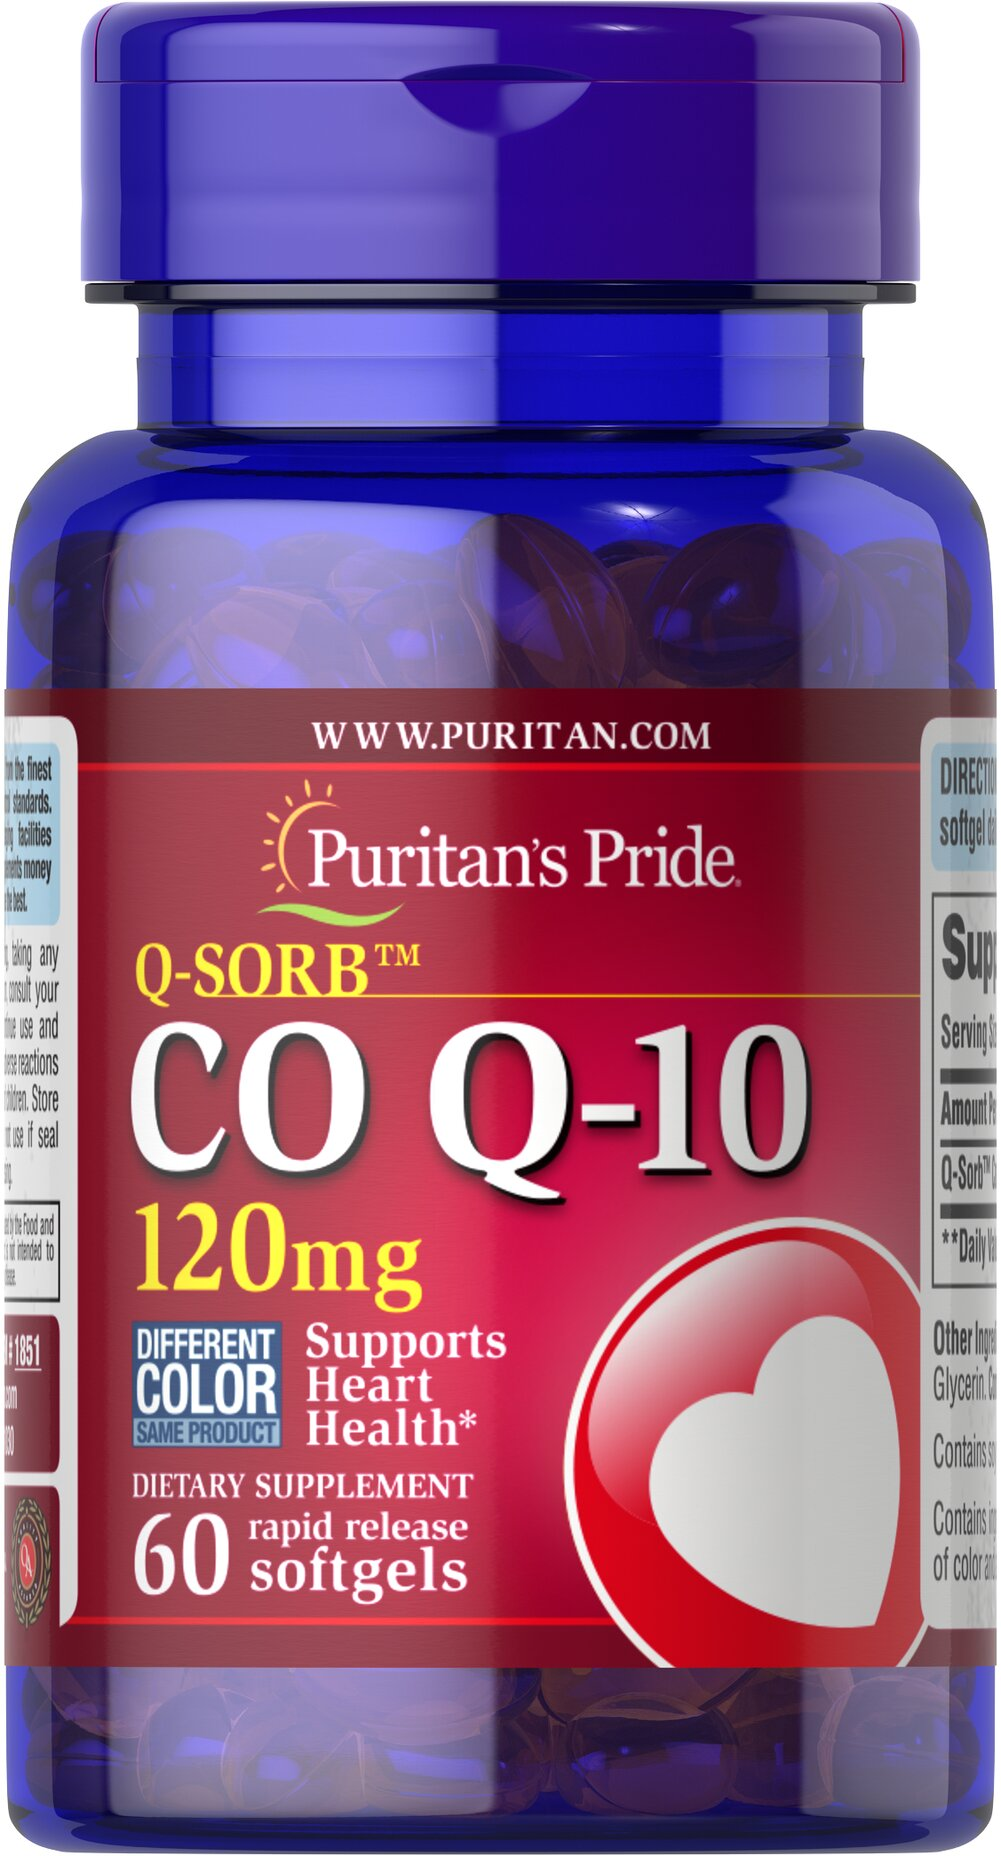 Q-SORB™ Co Q-10 120 mg <p>Puritan's Pride Q-Sorb™ Co Q-10 (coq10) provides antioxidant support for your heart and ensures potency and purity.**</p><p>Our Q-Sorb™ Co Q-10 is hermetically sealed in rapid release softgels to provide superior absorption</p><p>Contributes to your heart and cardiovascular wellness**</p><p>Helps support blood pressure levels already within a normal range**</p><p>Promotes energy production within your heart, brain, a